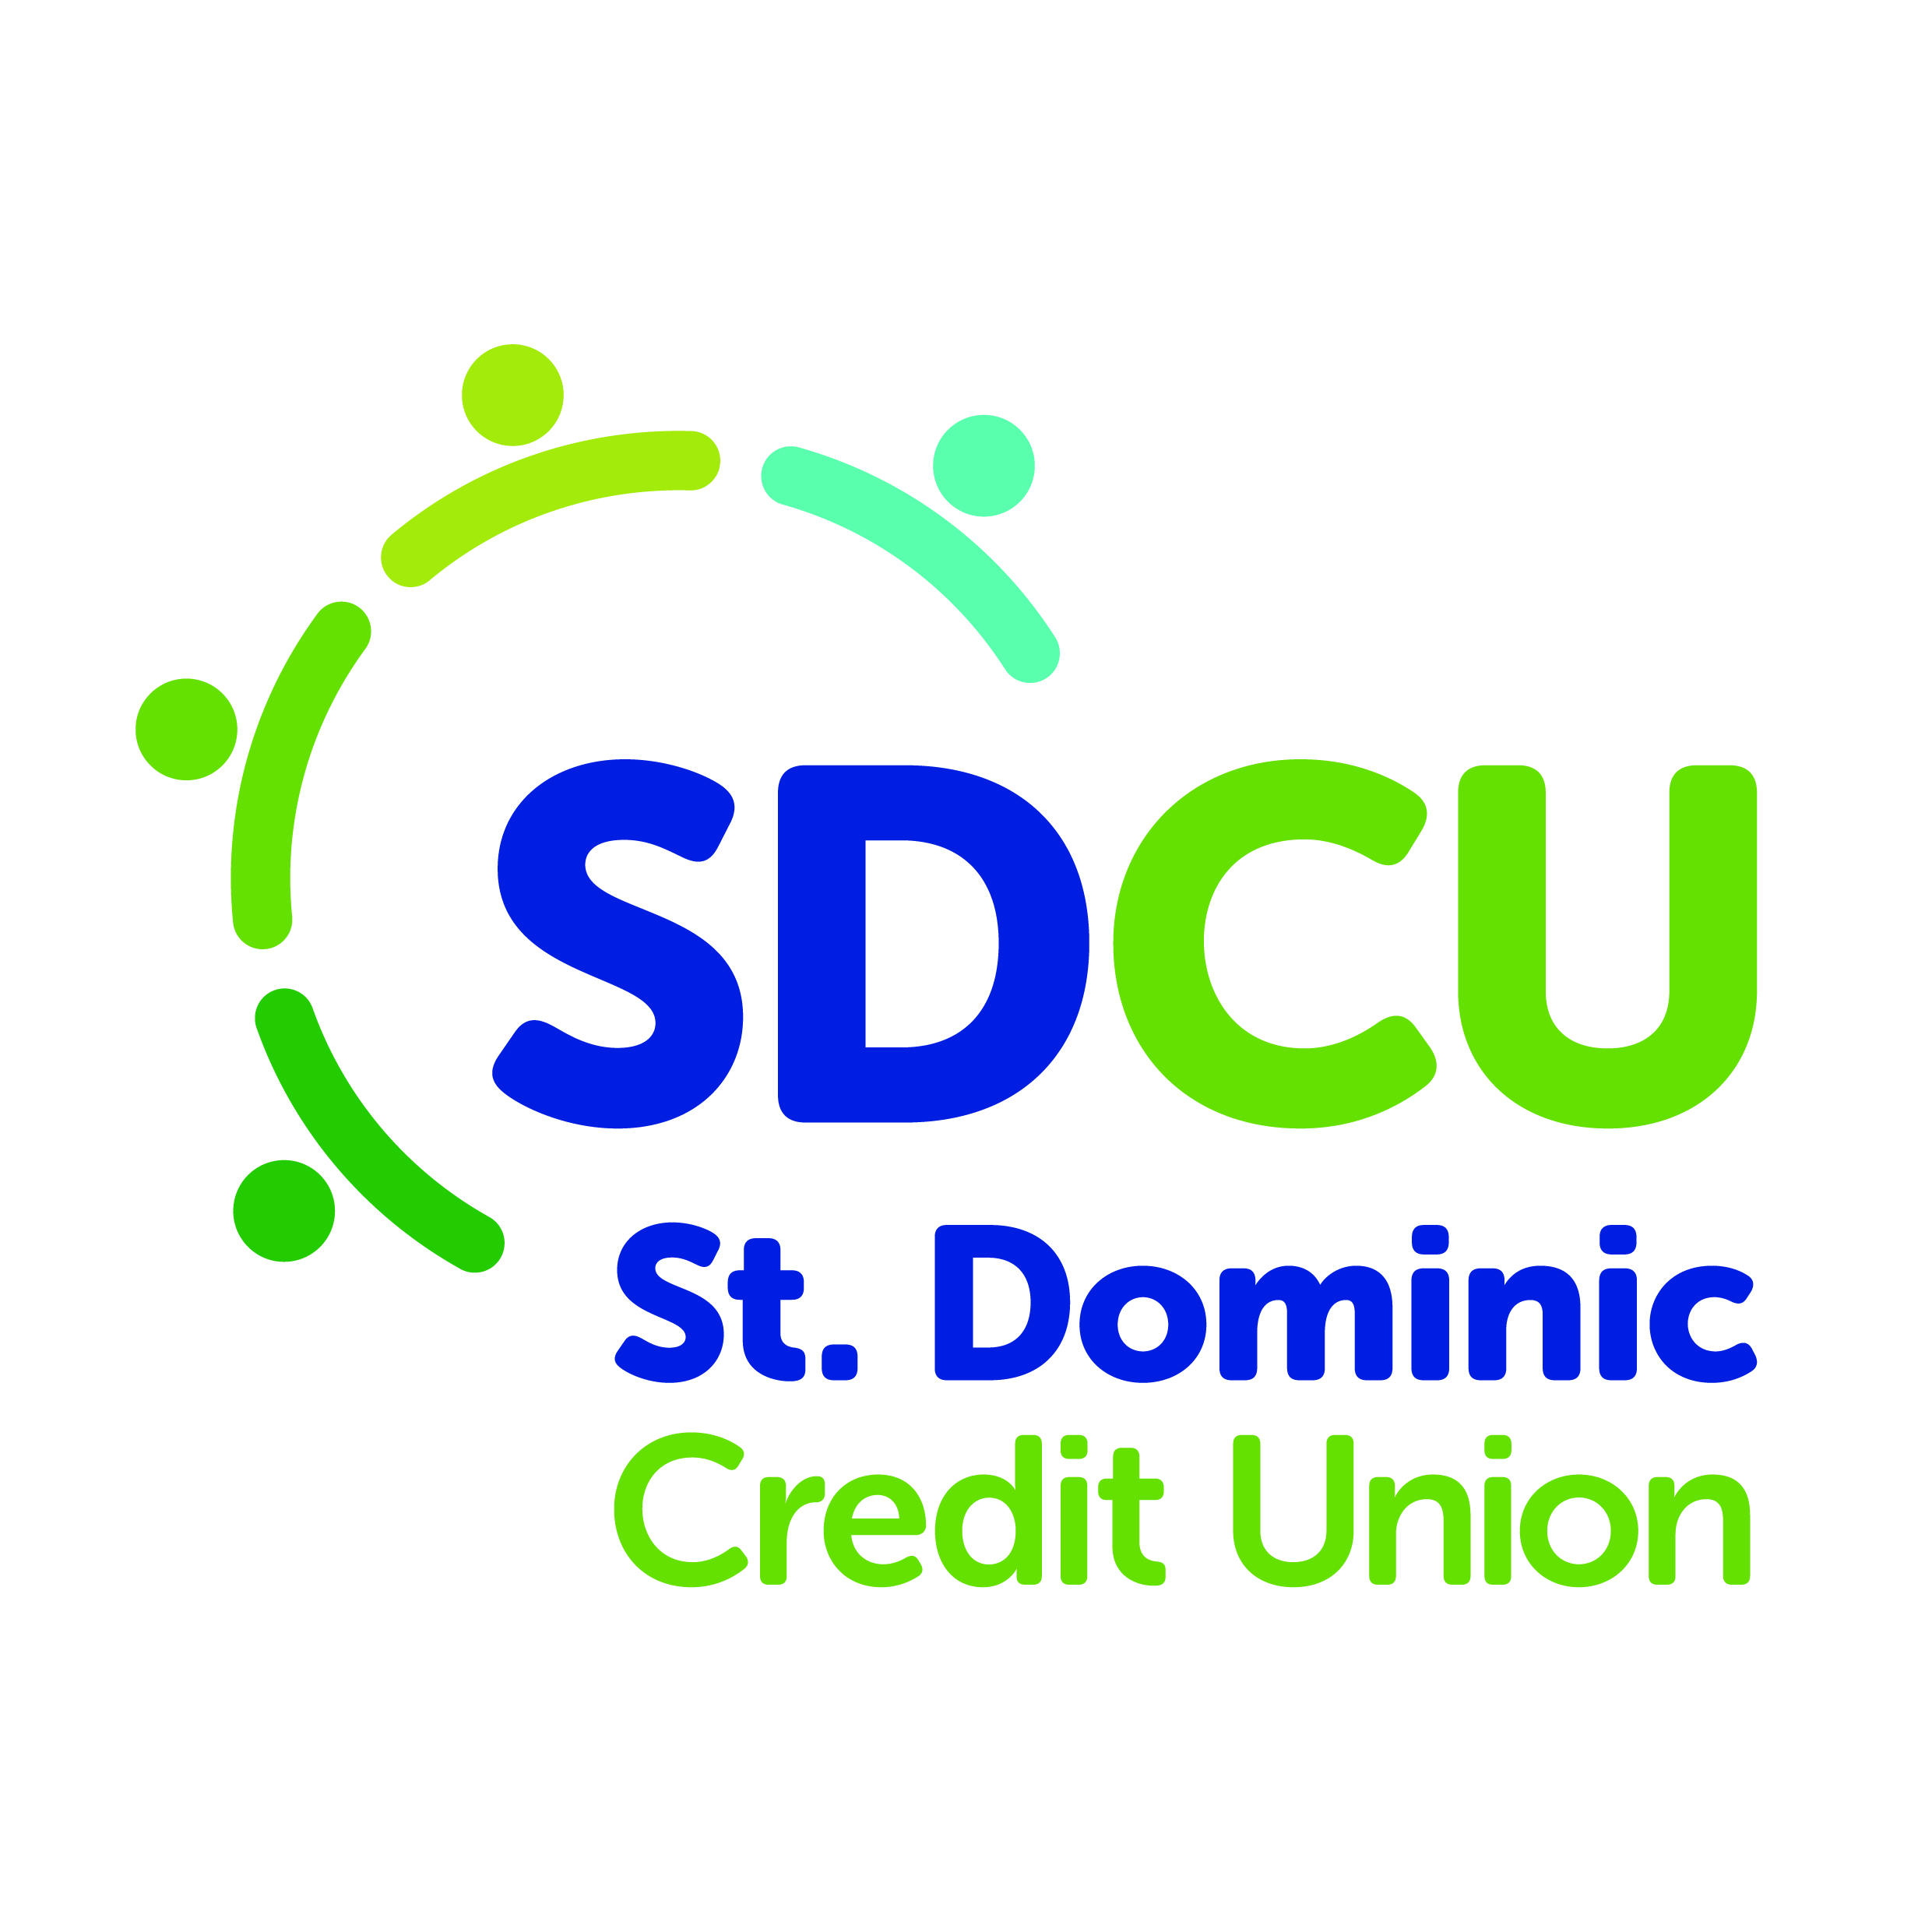 st. dominic credit union may 17